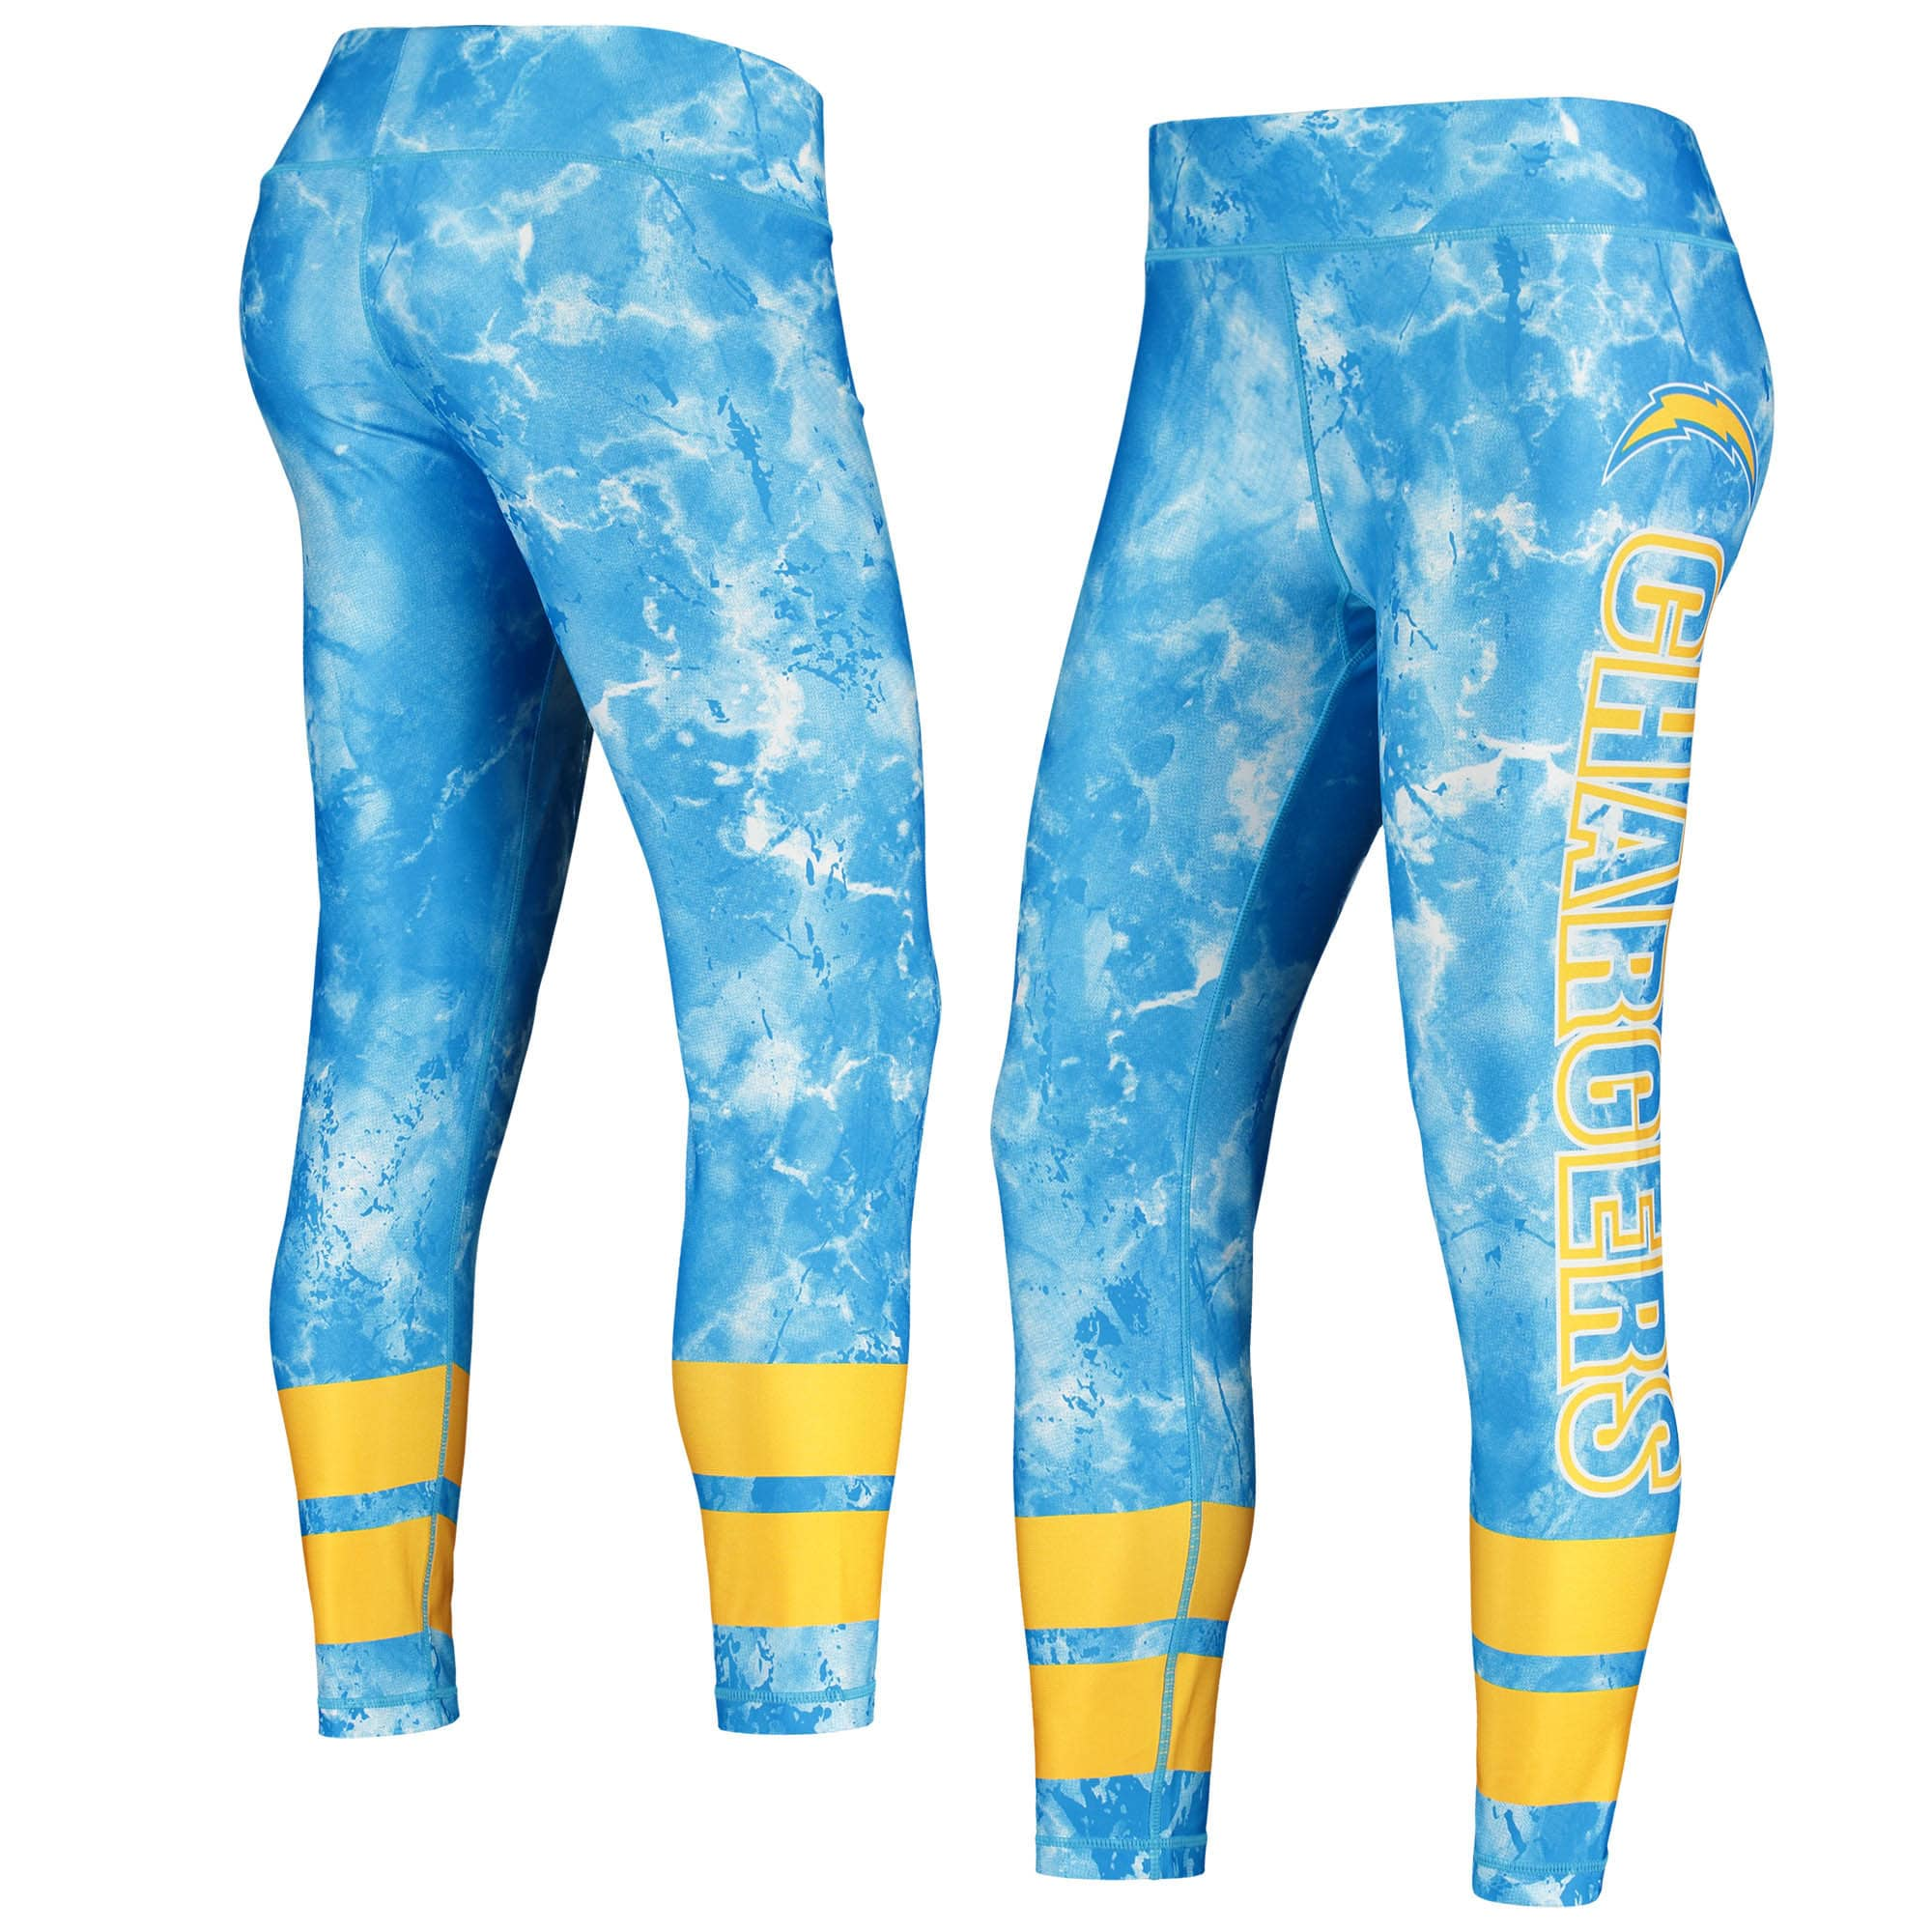 Los Angeles Chargers Concepts Sport Women's Dormer Knit Leggings - Powder Blue/Gold